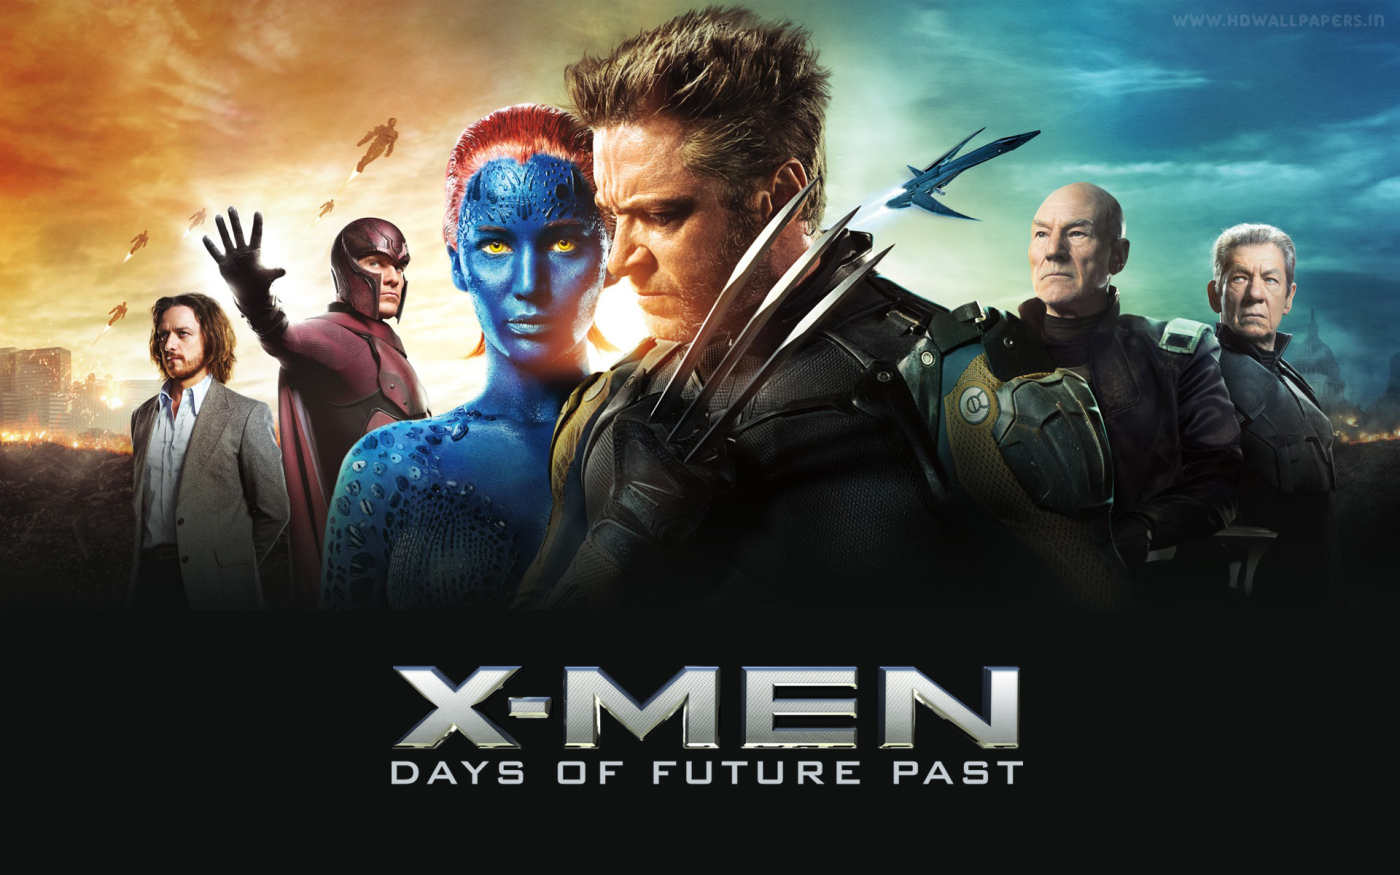 X-Men: Days of Future Past (2014) Movie Poster